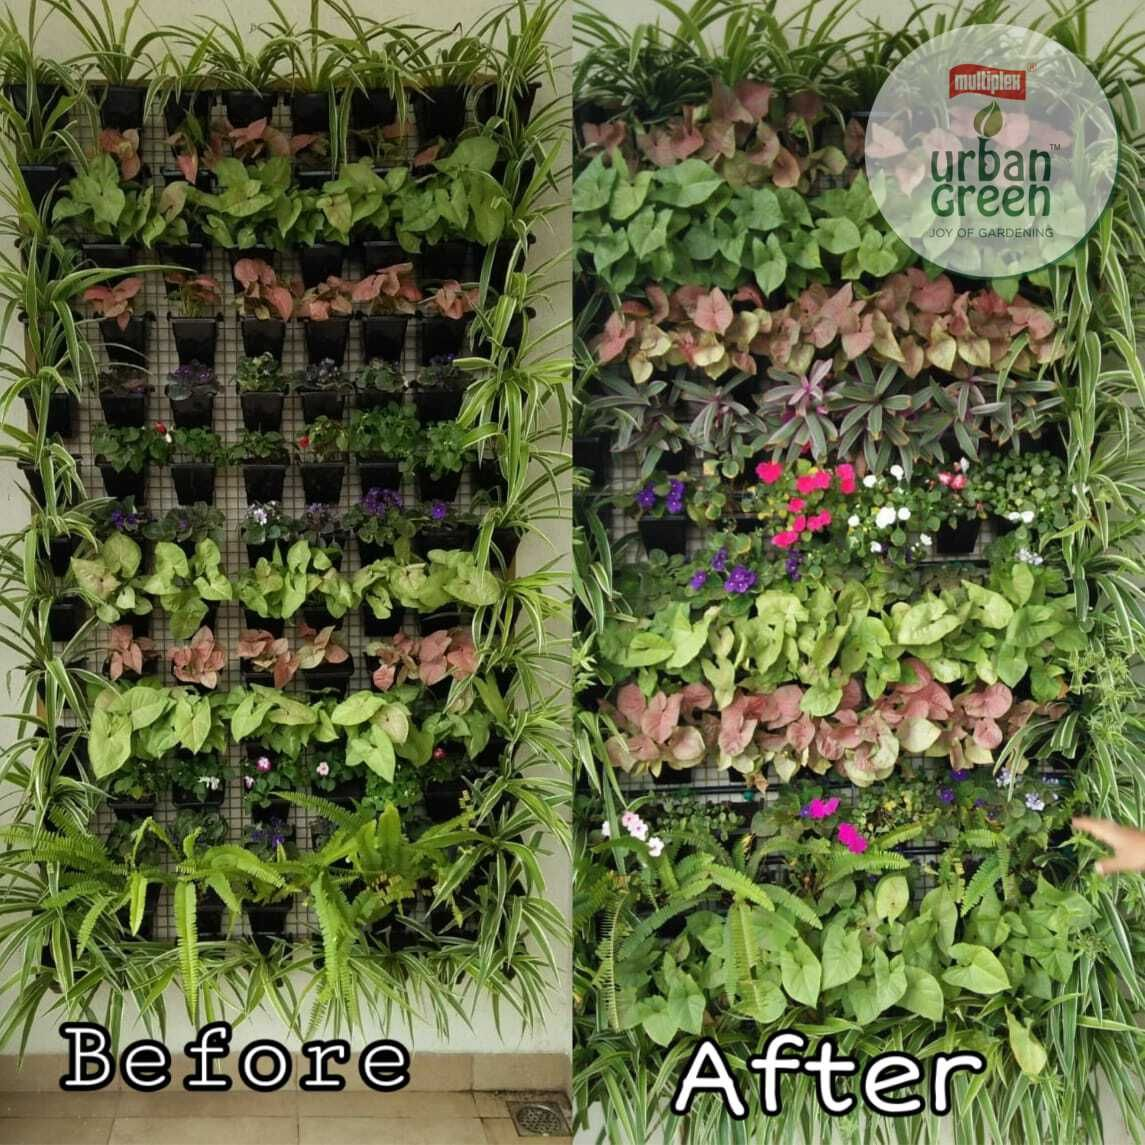 A simple way to grow more plants around us! Vertical